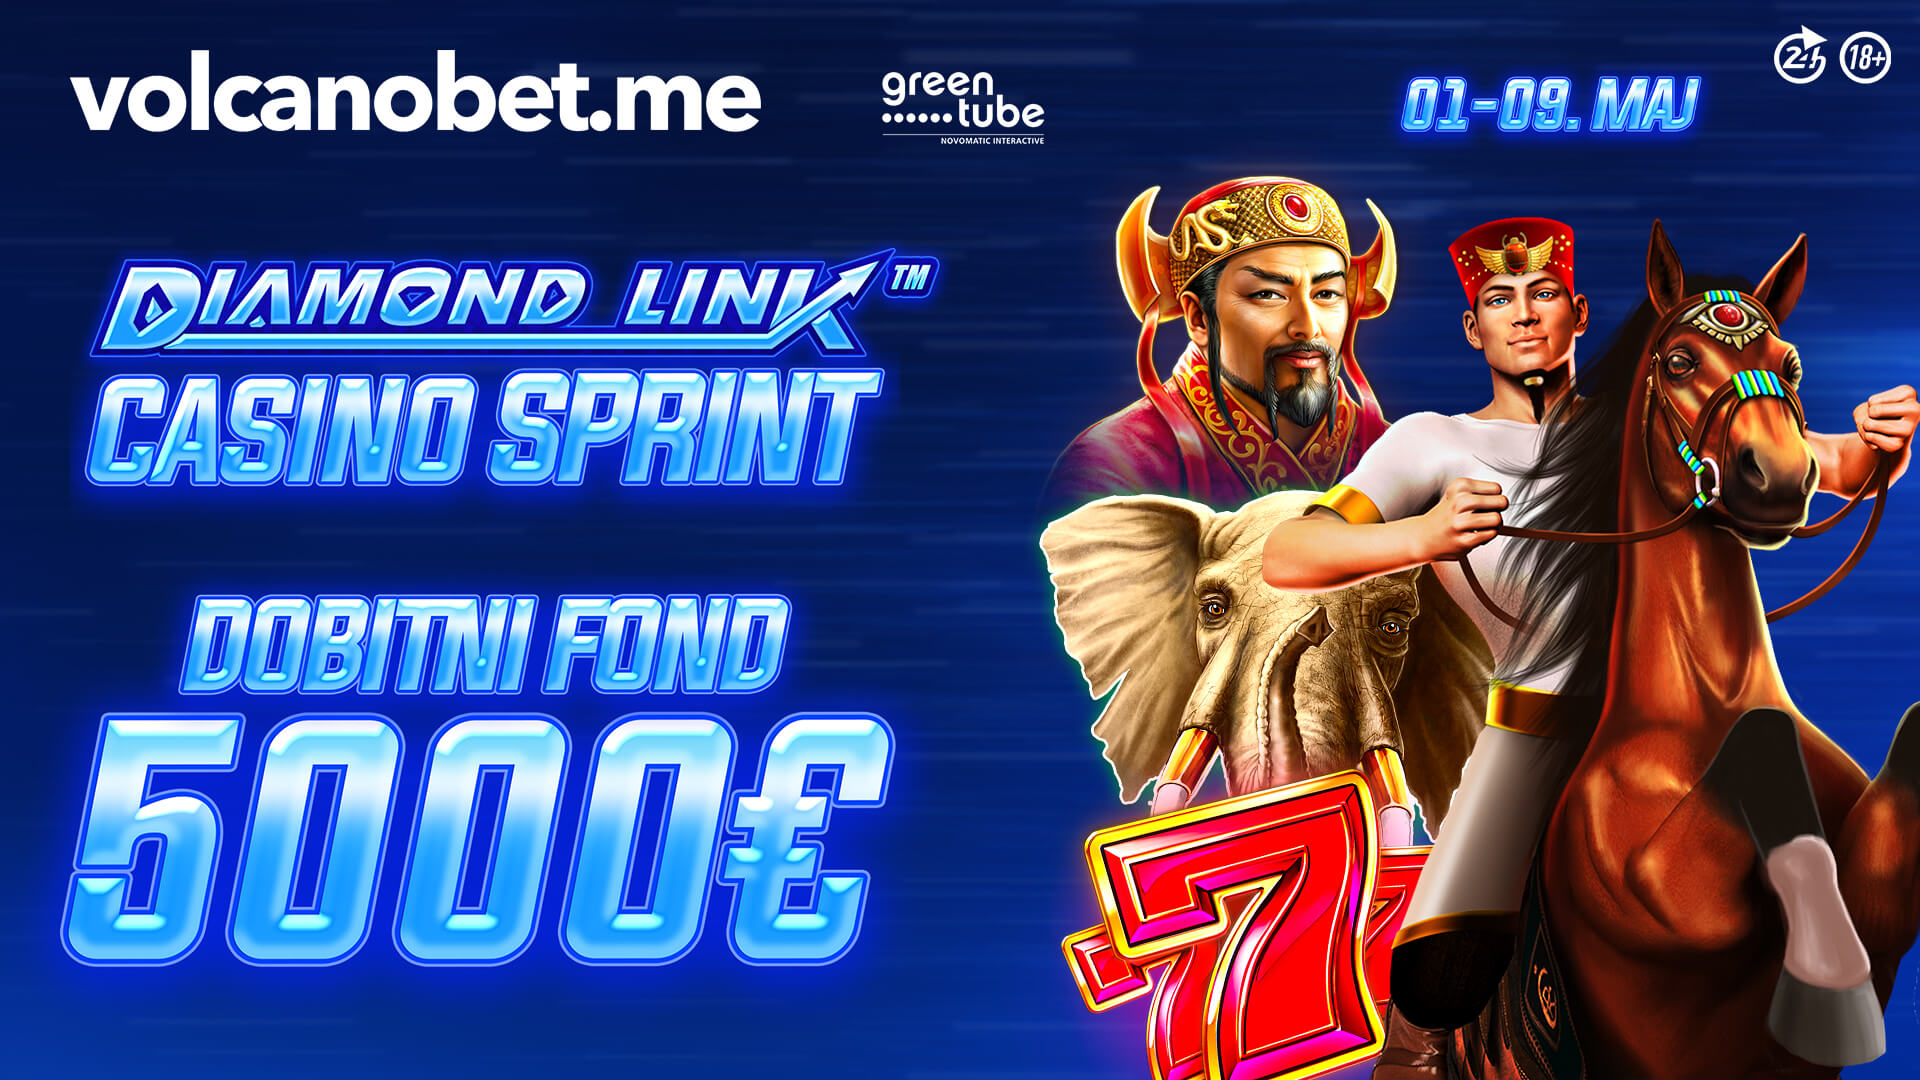 Diamond Link Casino Sprint